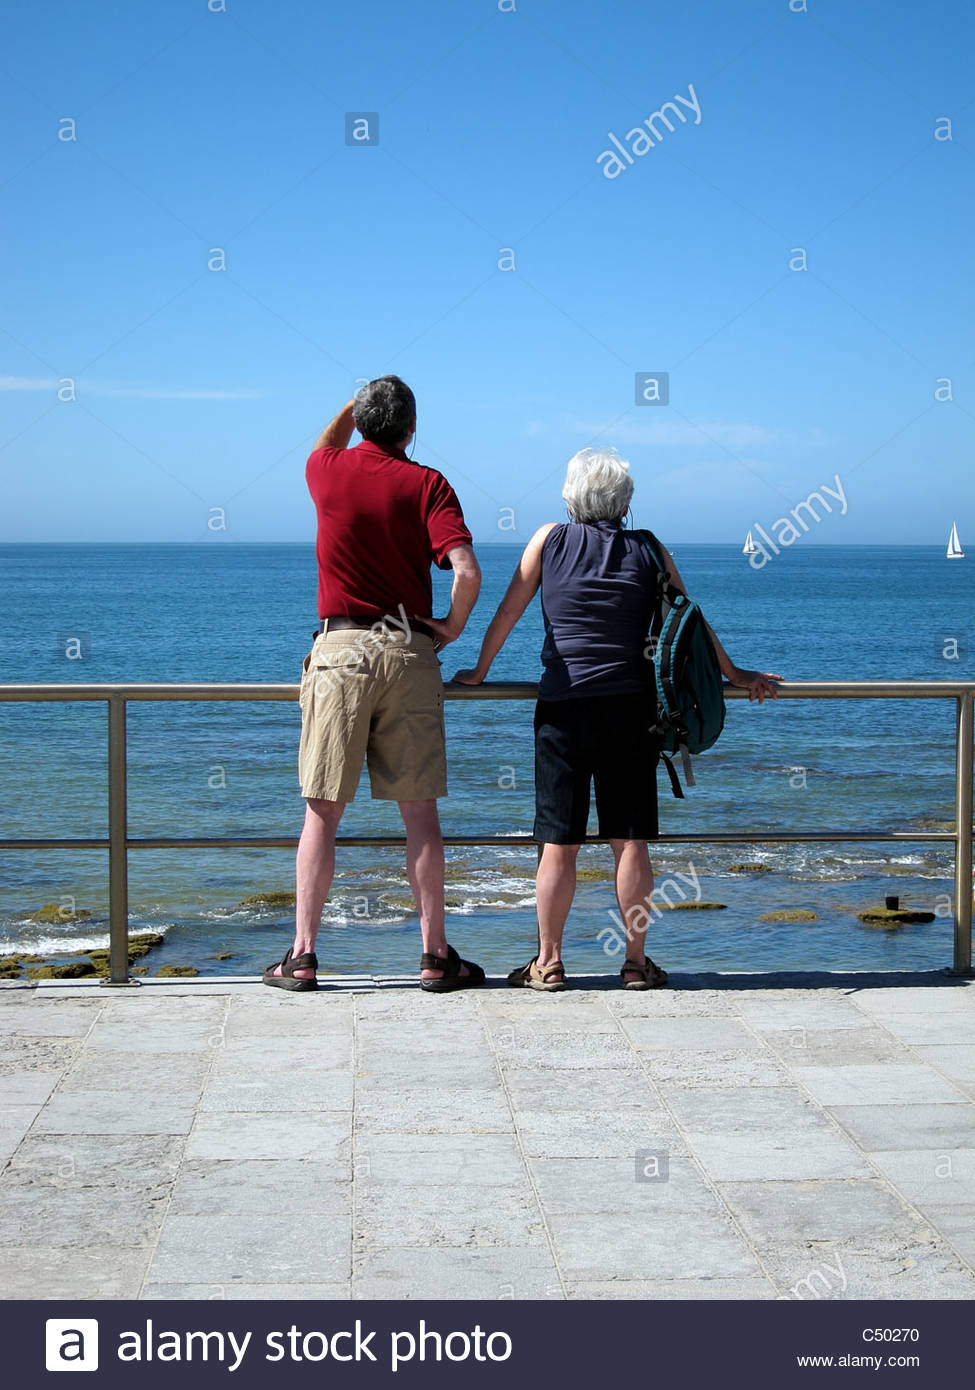 Admiring the view - Stock Image